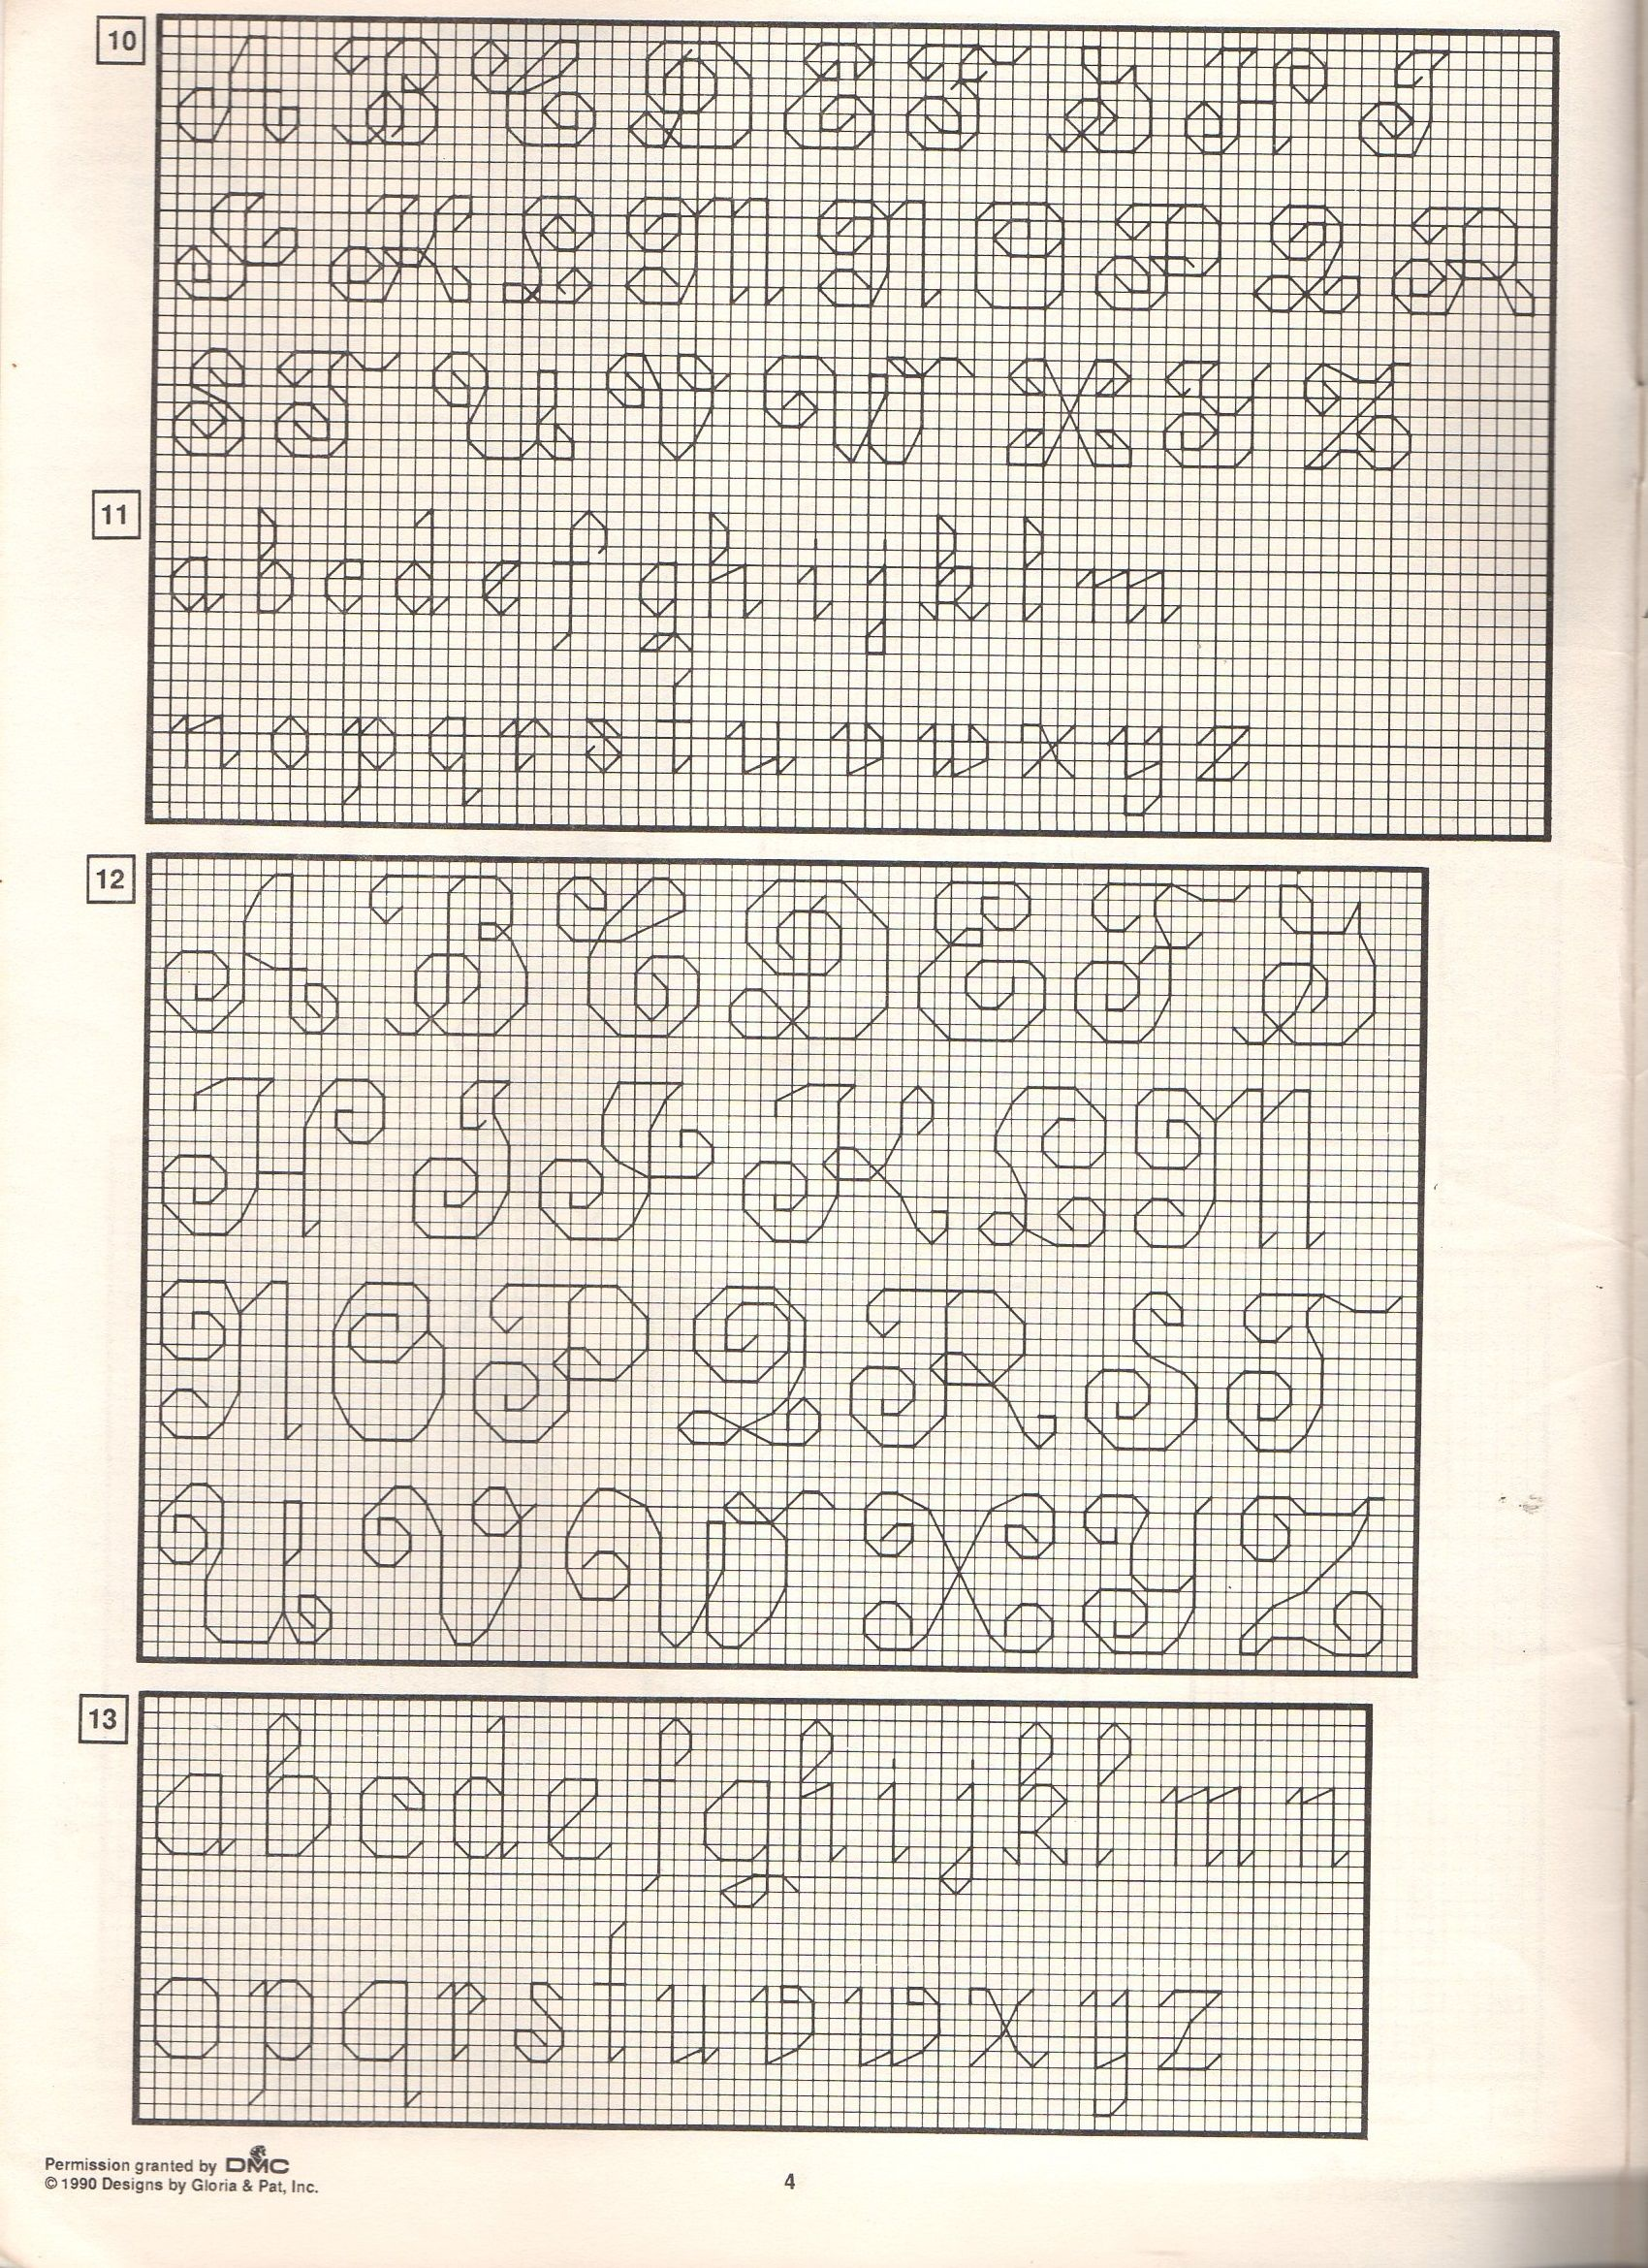 Badezimmereinrichtung 7 Buchstaben Kollektionen Von Designs Backstitch Alphabet Patterns Kanavice Etamin Sticken